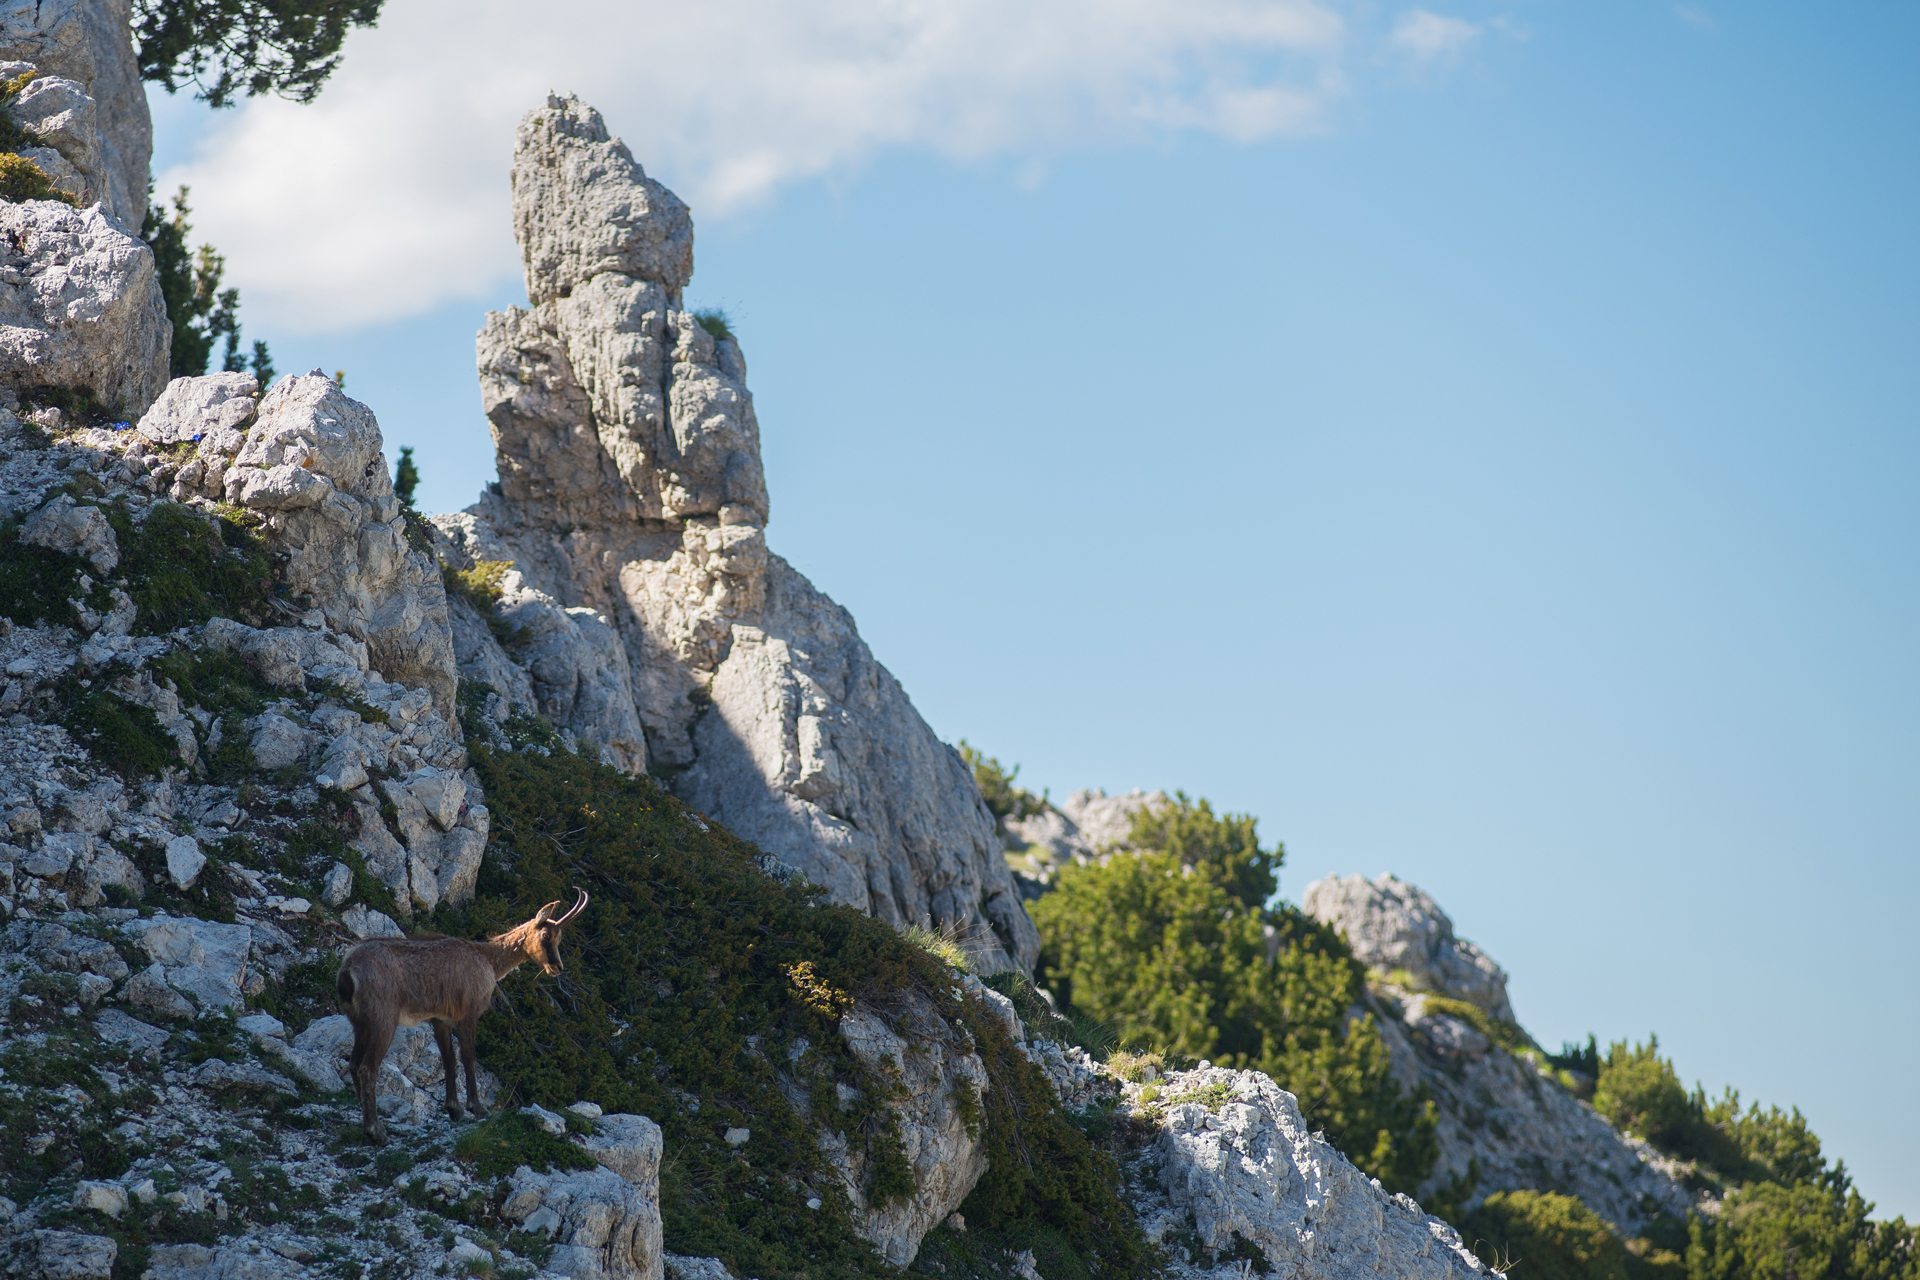 Abruzzi chamois in its habitat made of limestone columns